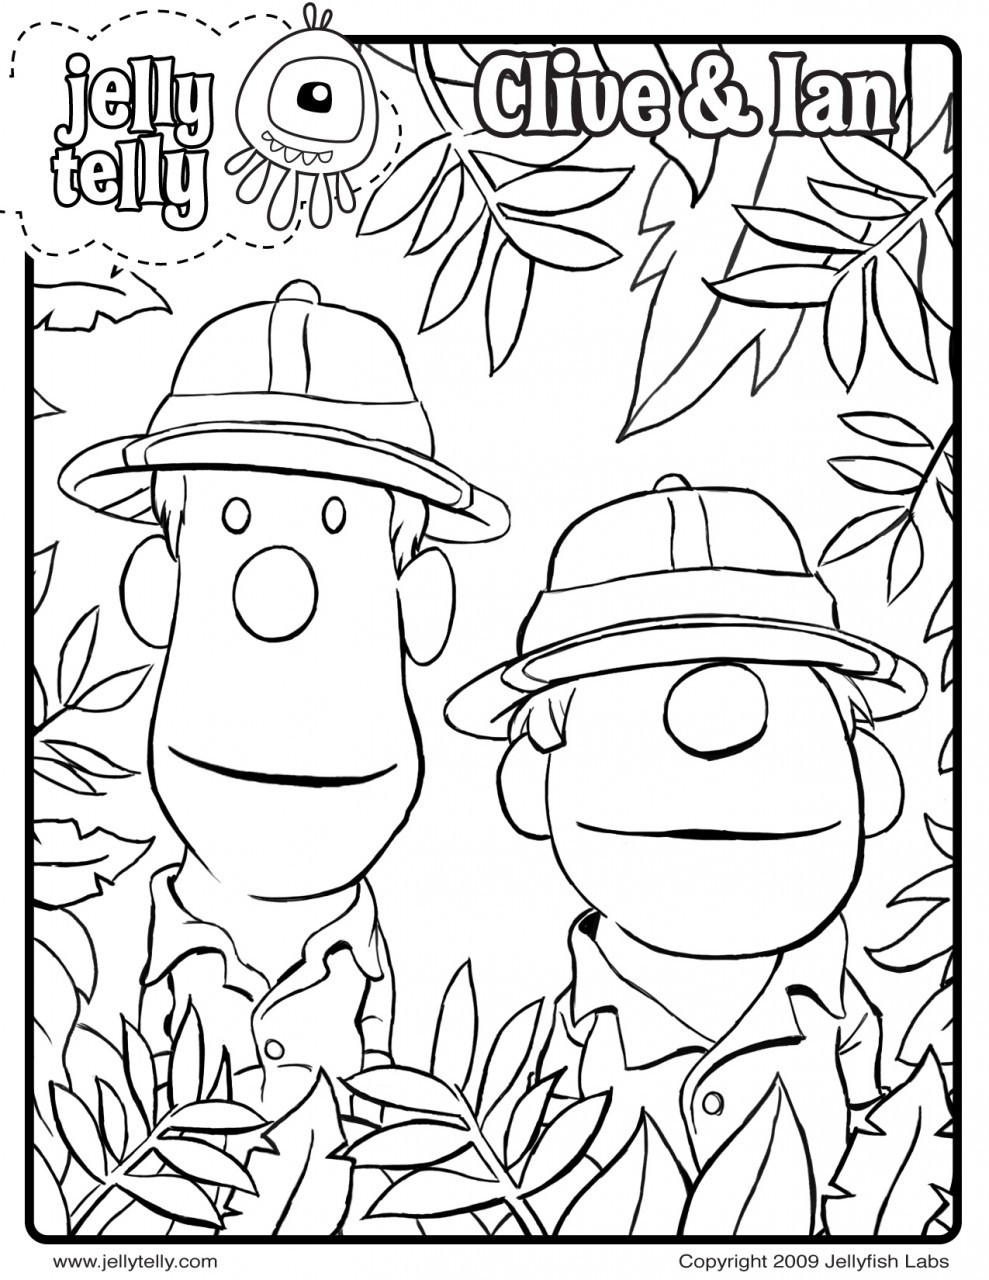 naaman and the servant girl coloring pages - photo #37